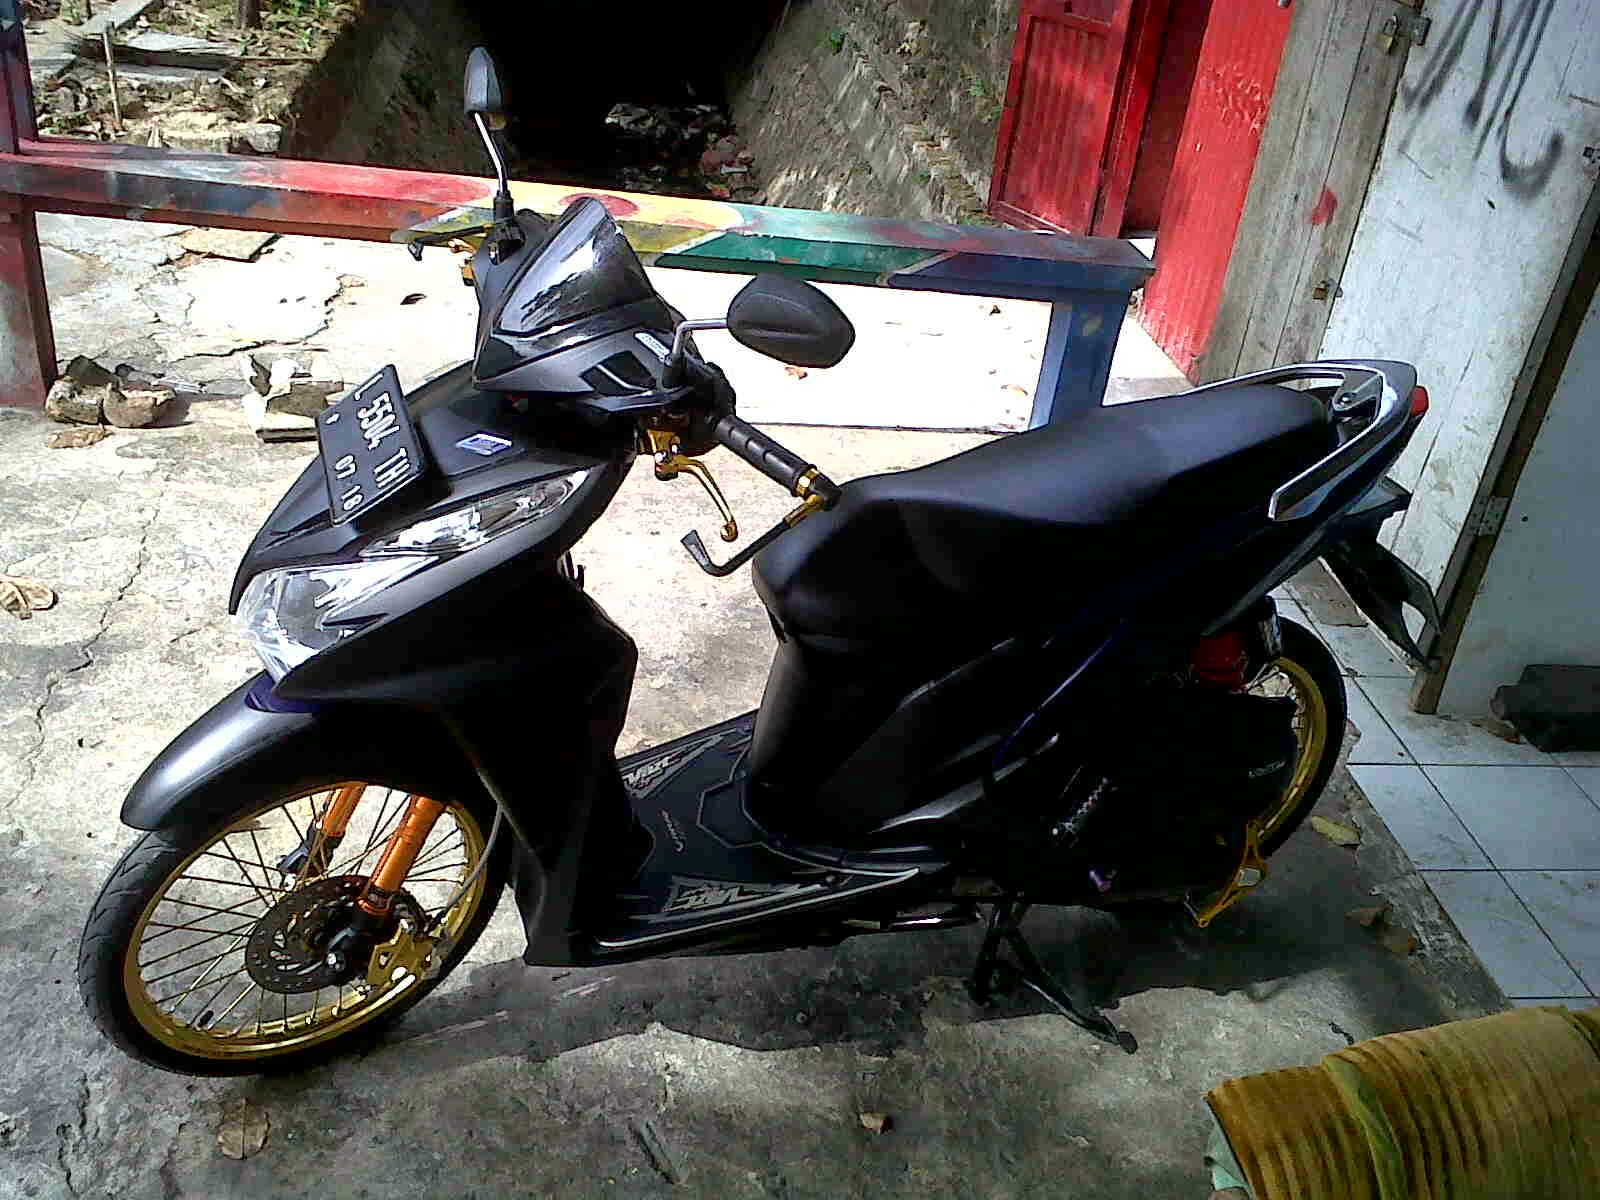 Modifikasi Vario 125 Injection Kumpulan Modifikasi Motor Vario